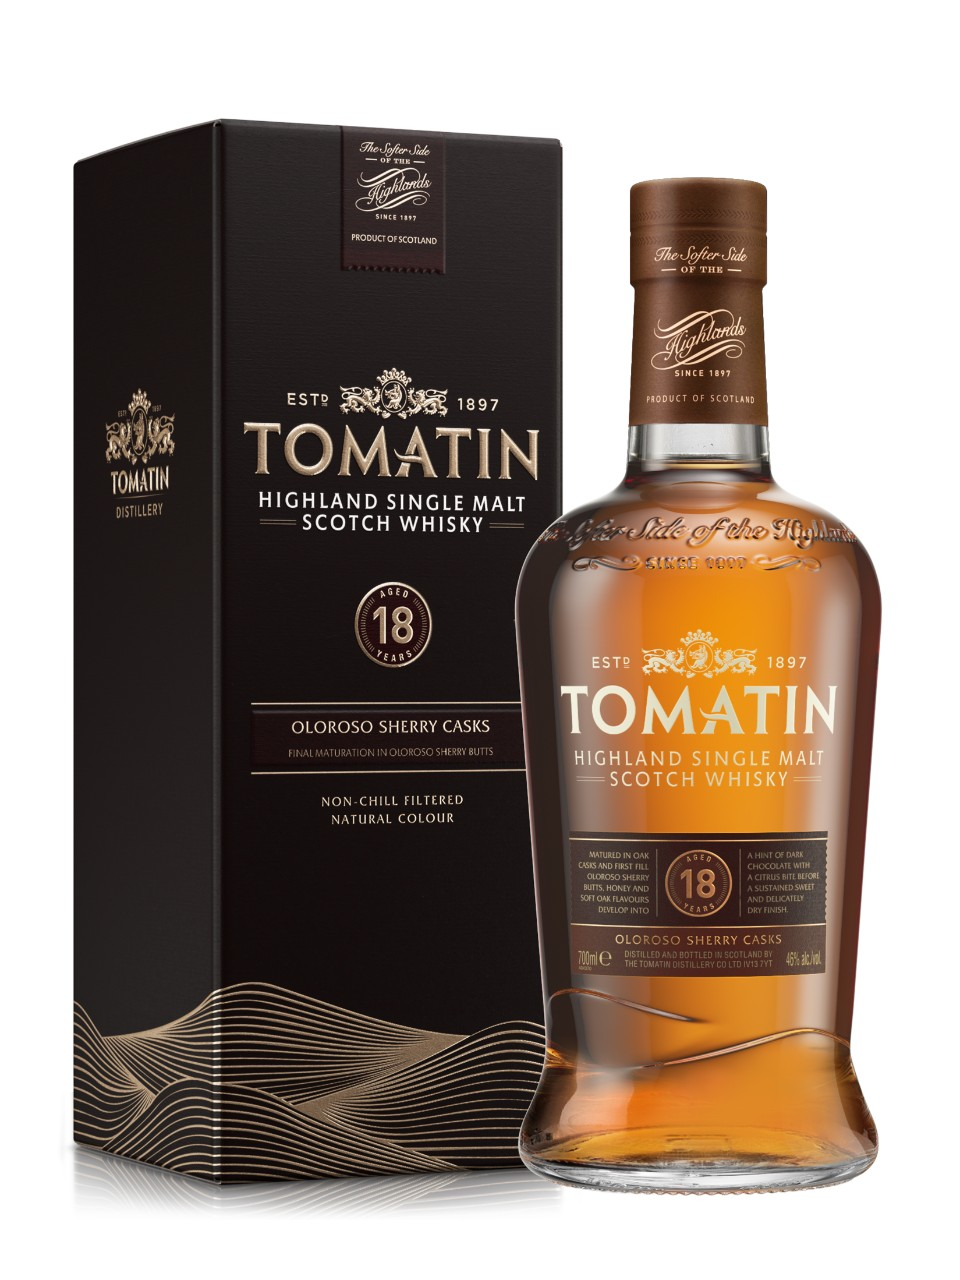 Image for Tomatin 18 Year Old Highland Single Malt Scotch Whisky from LCBO